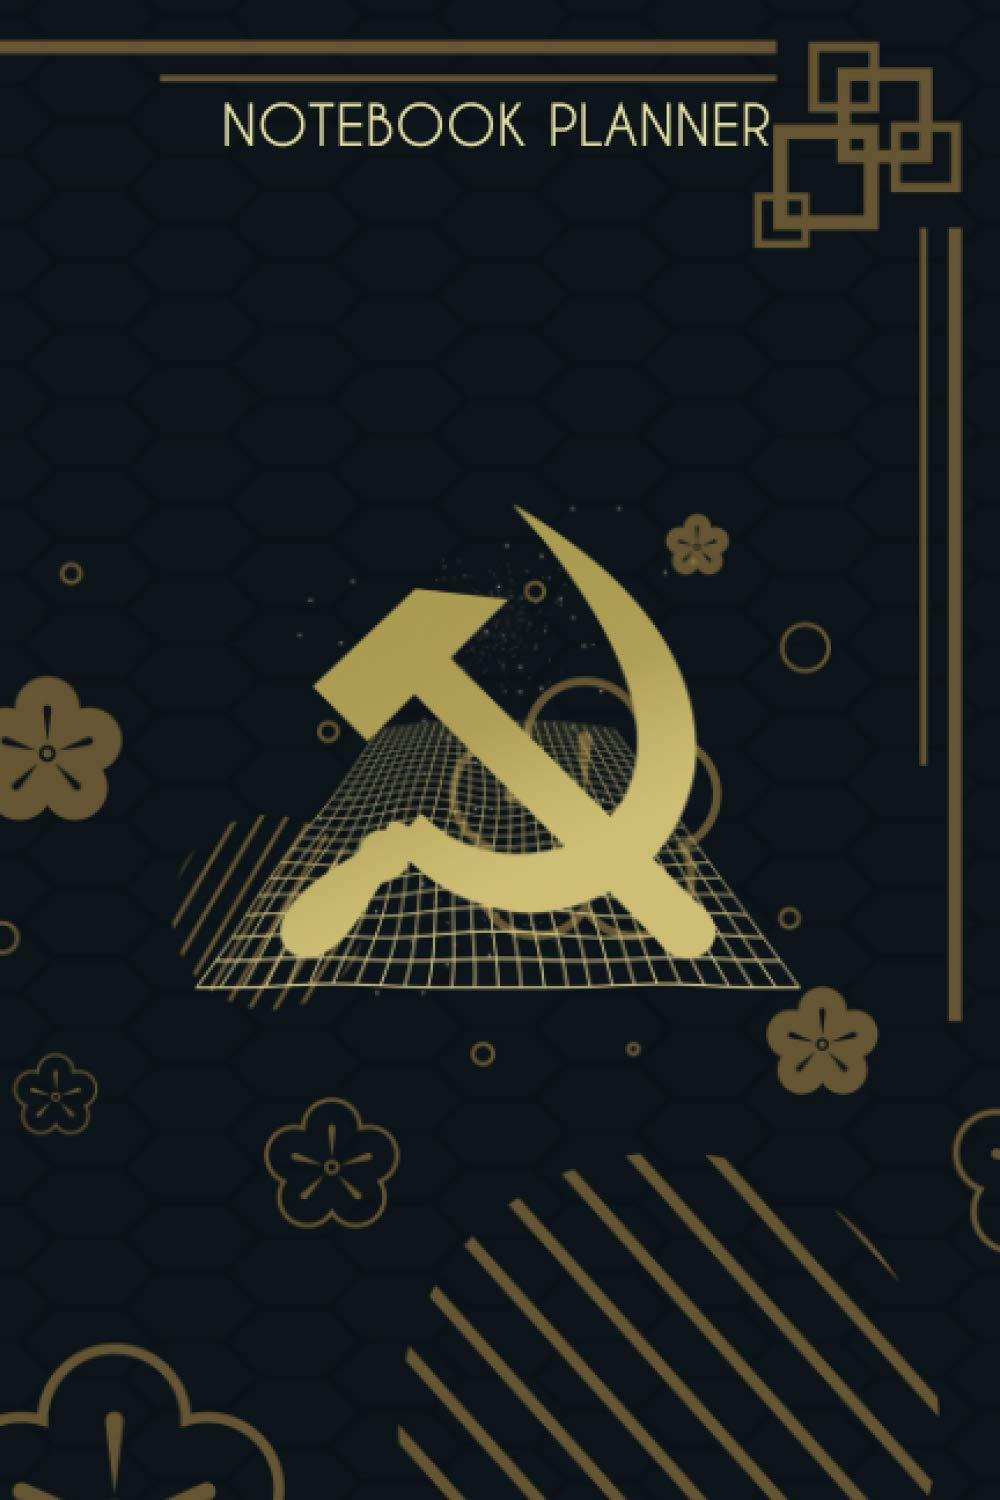 Notebook Planner Hammer Sickle Communist Aesthetic: Finance, Goals, Simple, Small Business, Schedule, Over 100 Pages, Menu, 6x9 inch